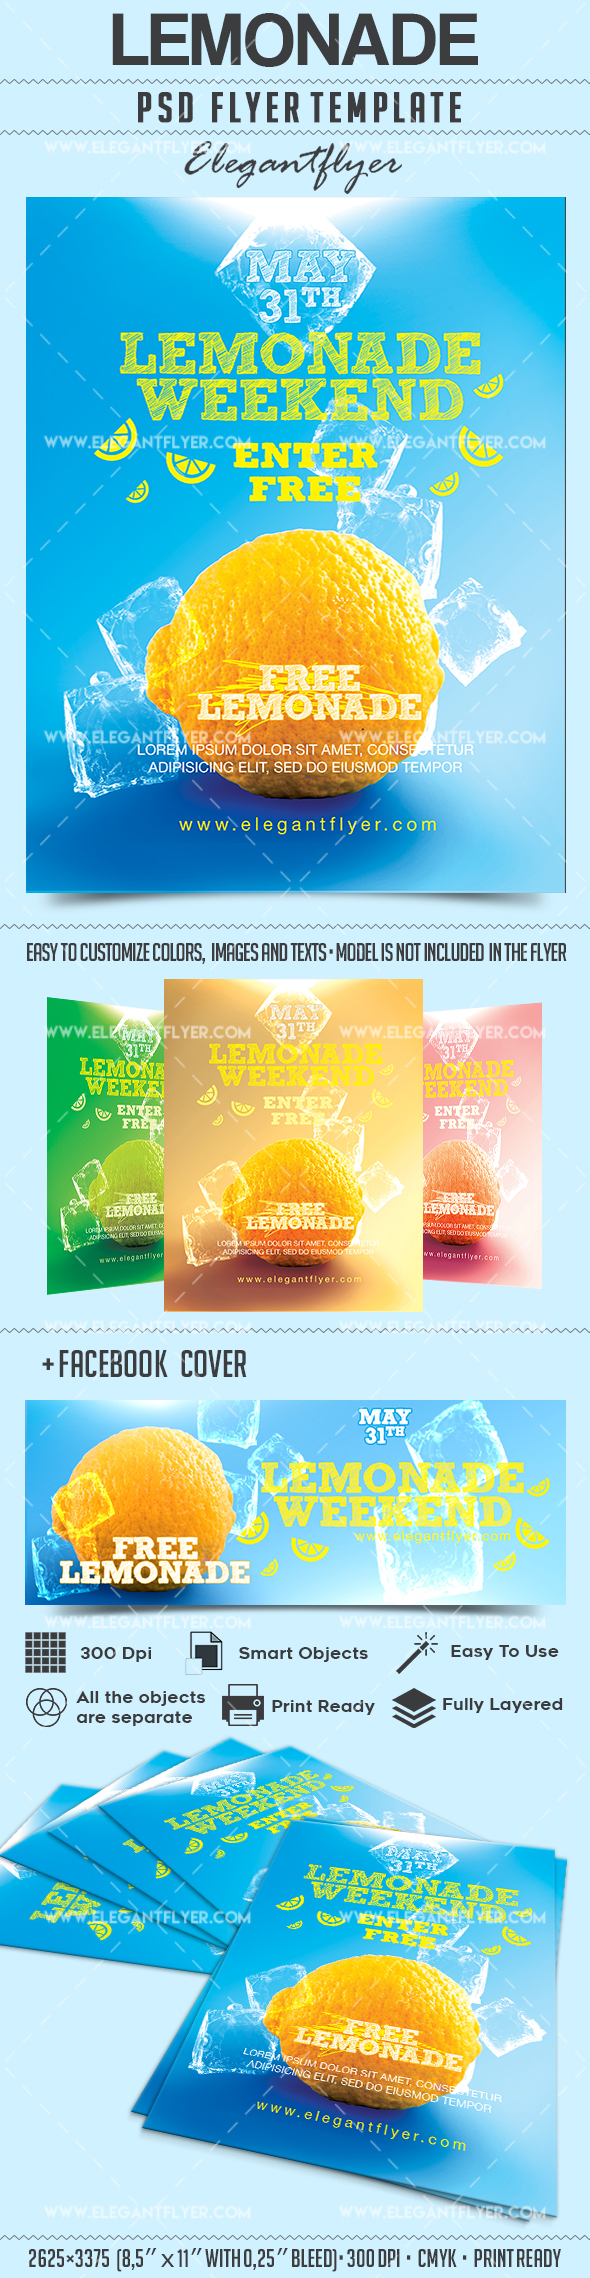 Lemonade Weekend – Flyer PSD Template + Facebook Cover